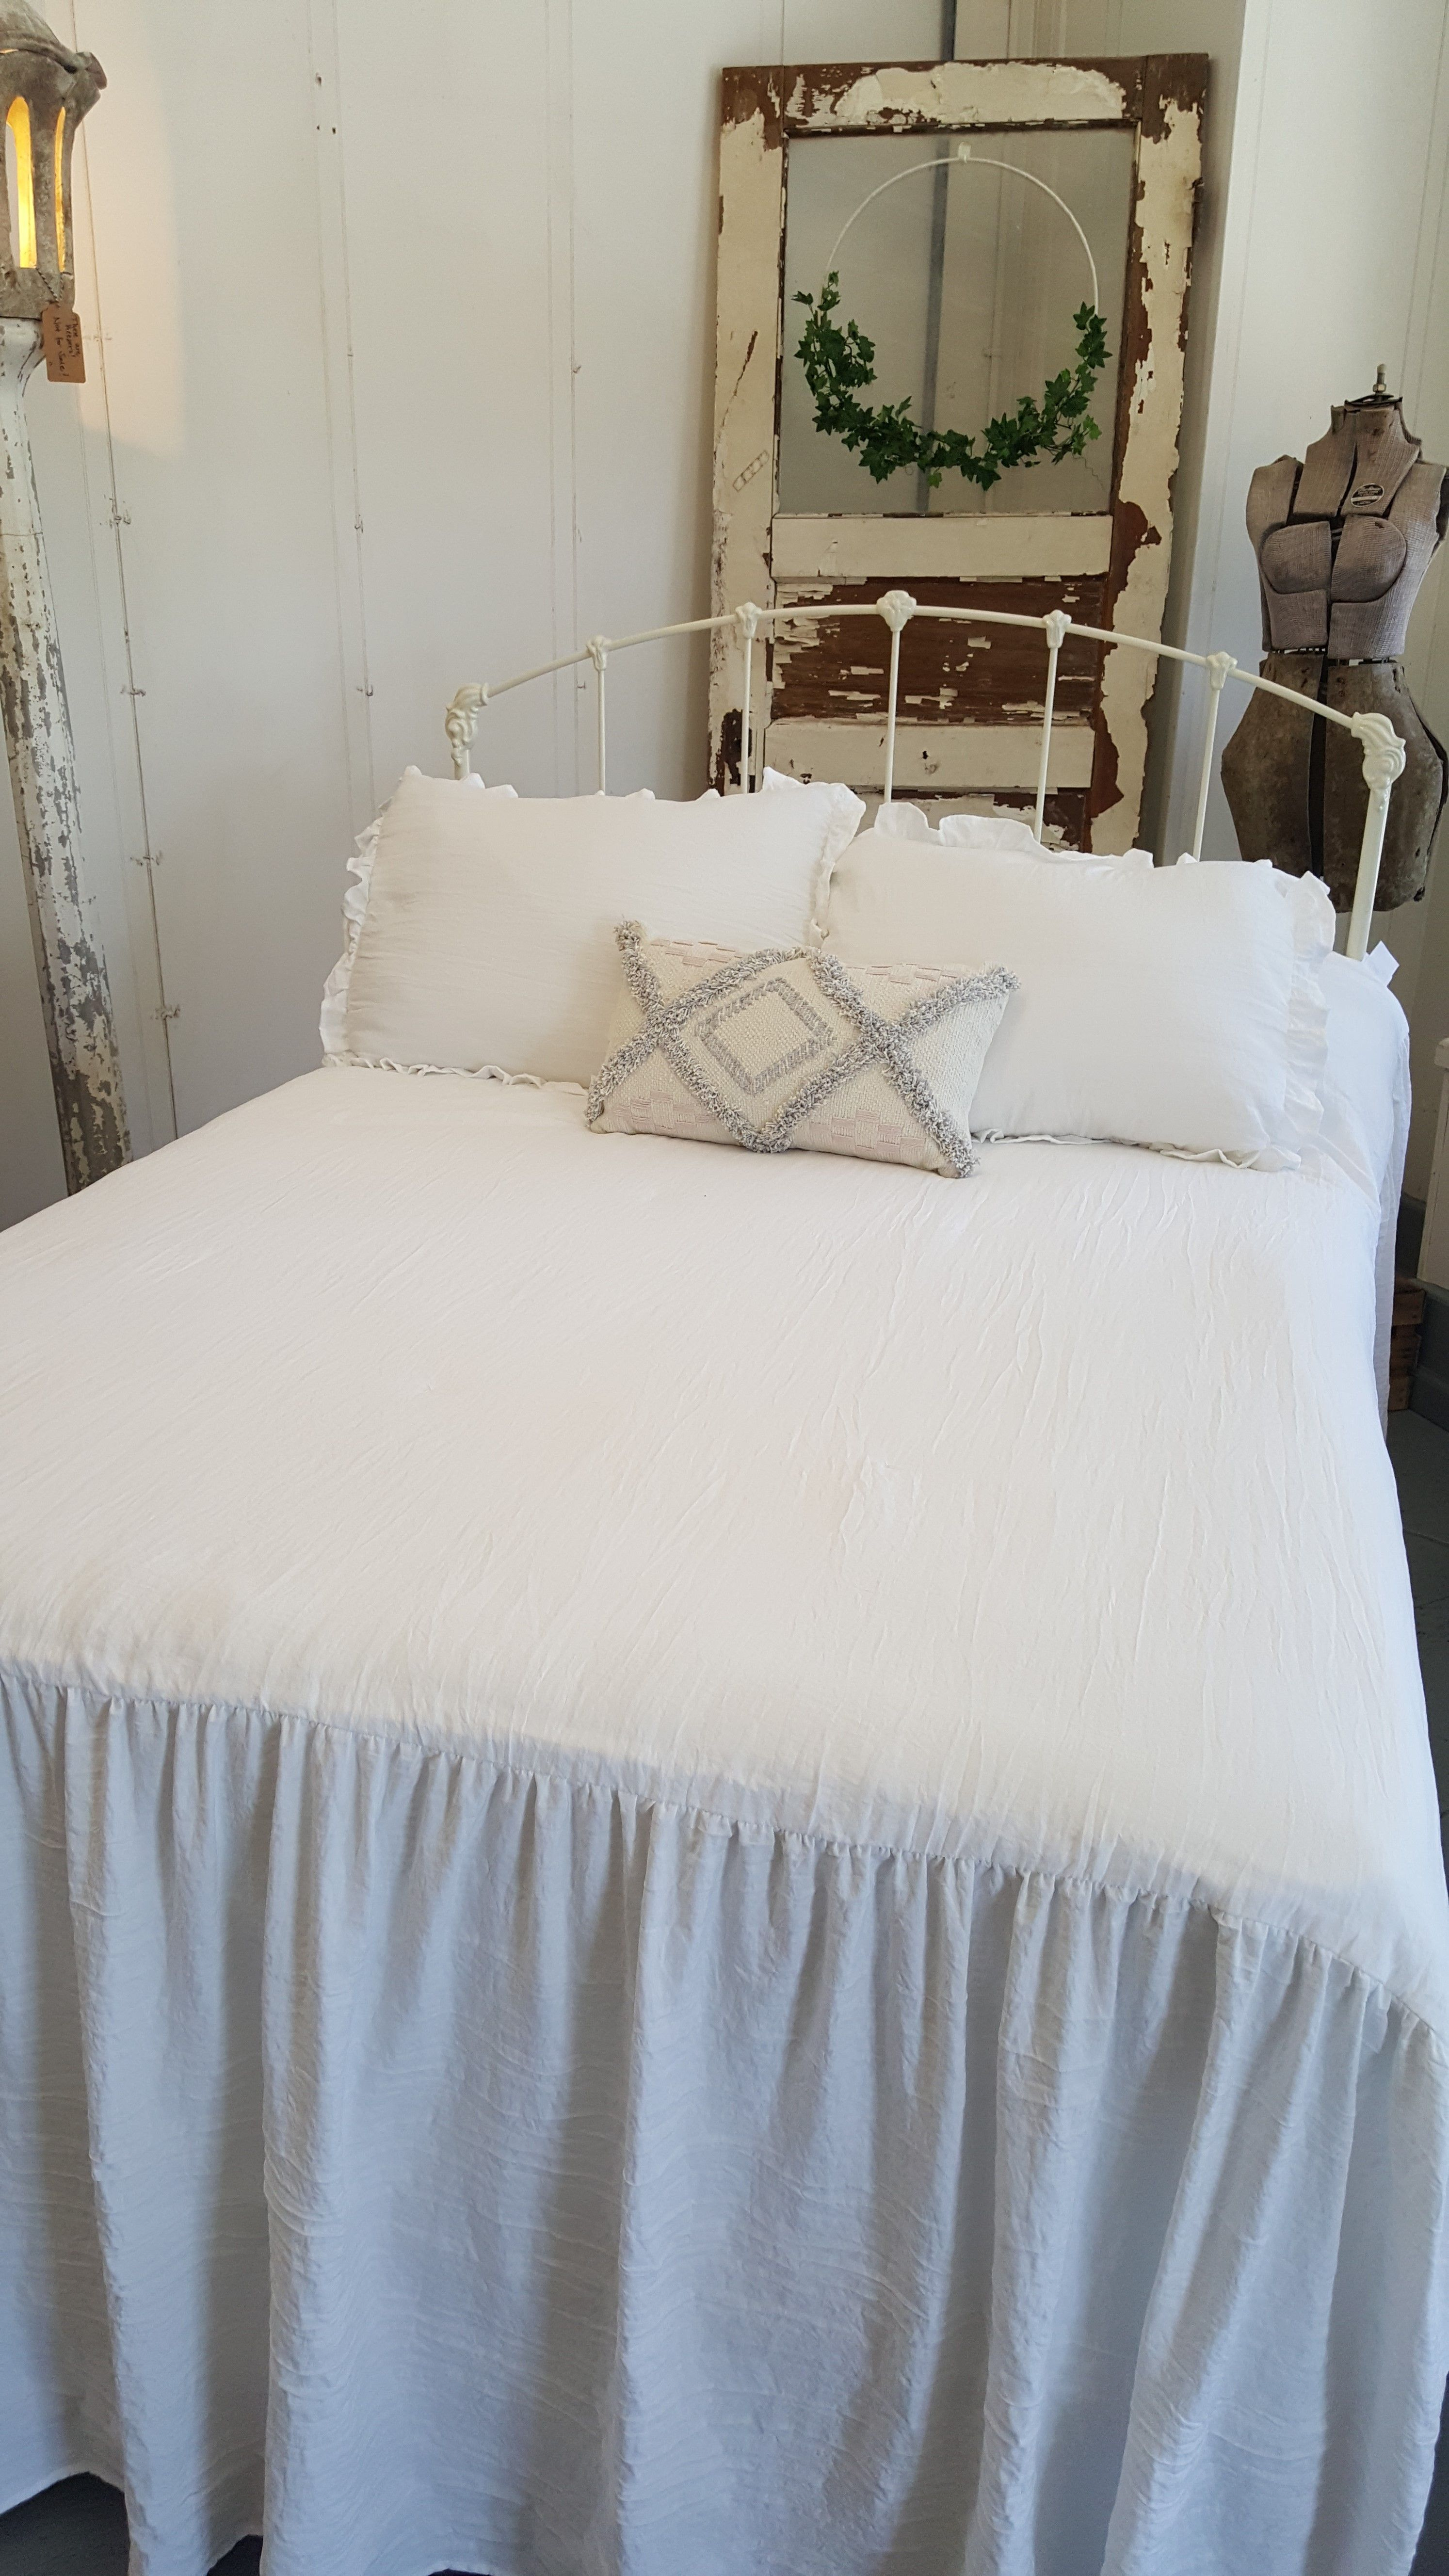 Farmhouse Style Bedroom W An Old Iron Bed Painted A Soft